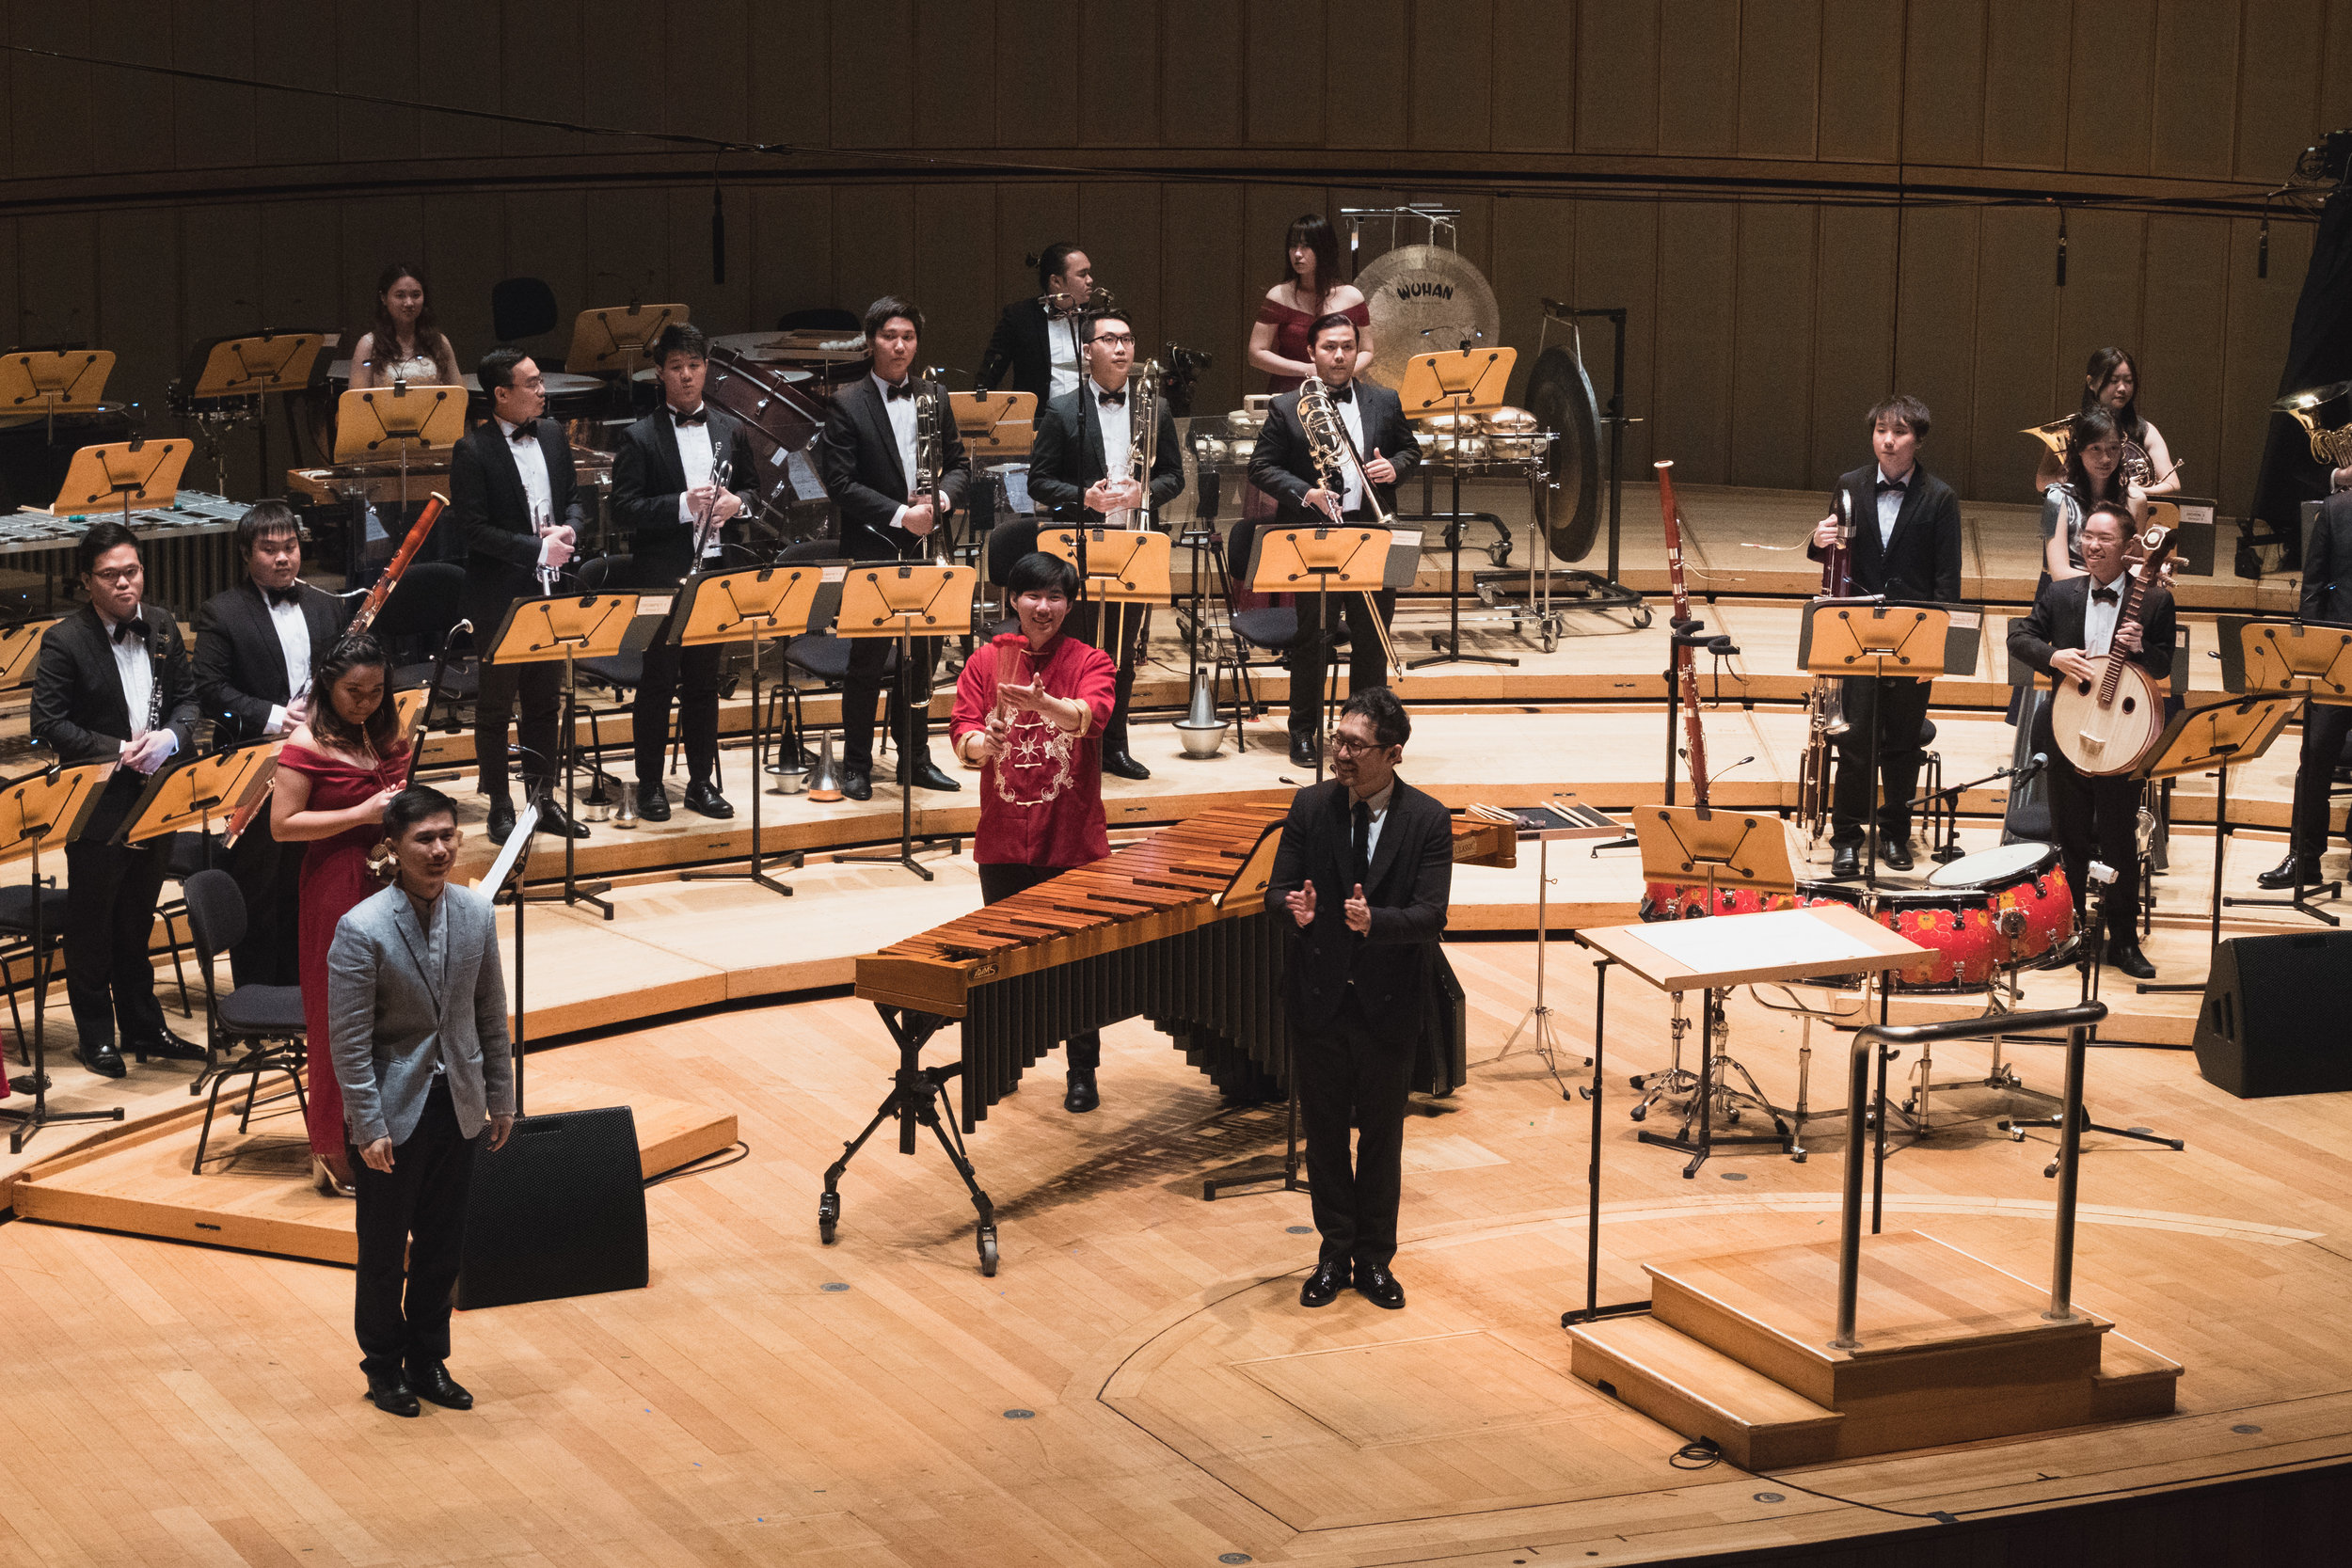 Asst Prof Chen Zhangyi being congratulated after the premiere of his Concerto for Erhu, Zhongruan, Percussion and Ensemble.